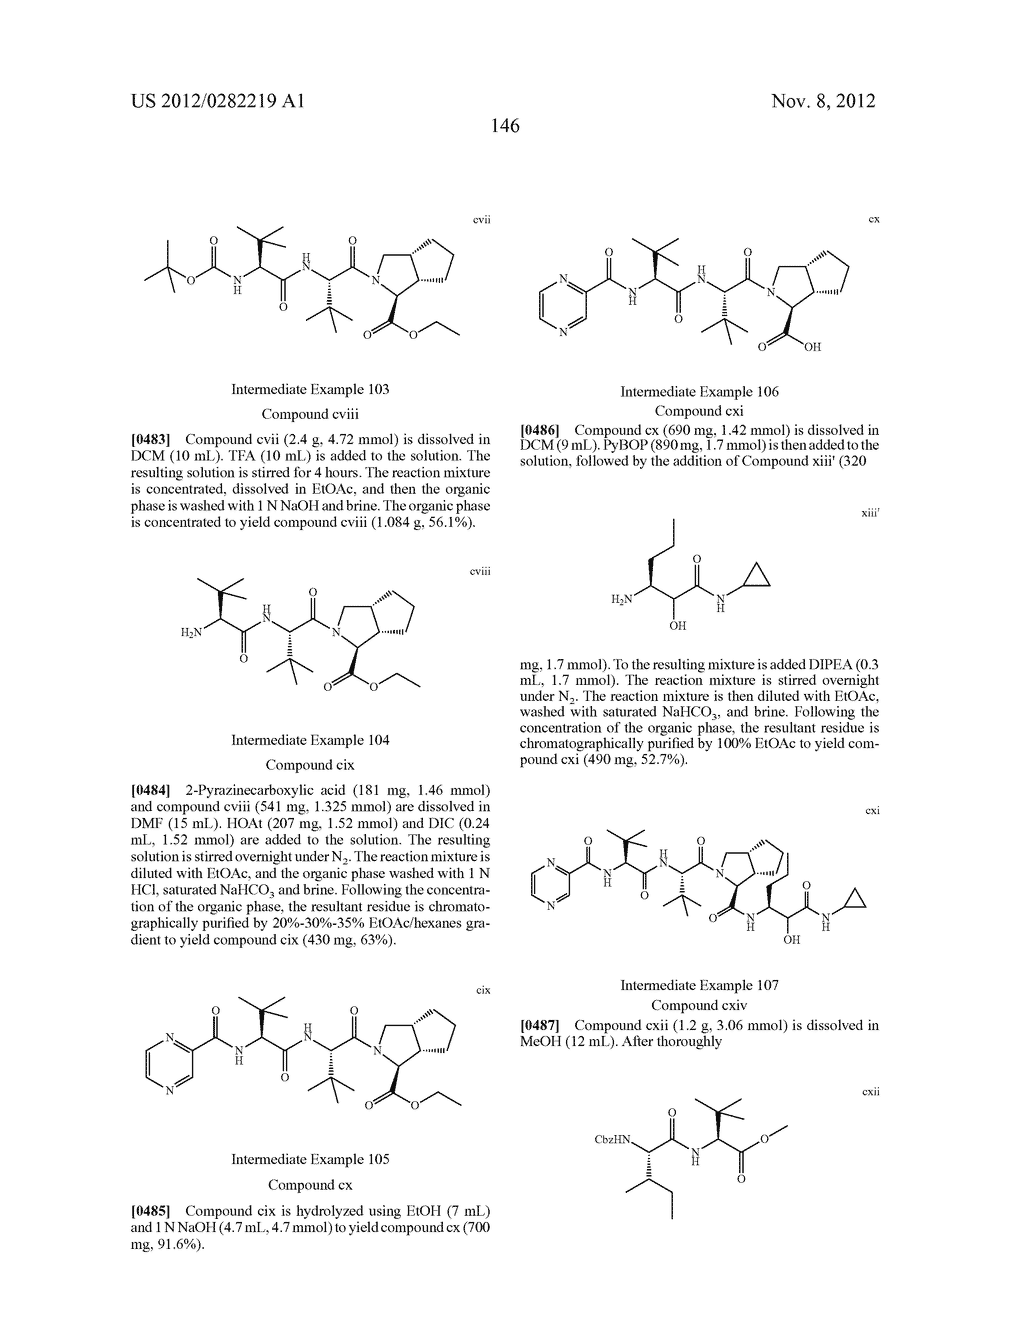 PEPTIDOMIMETIC PROTEASE INHIBITORS - diagram, schematic, and image 161